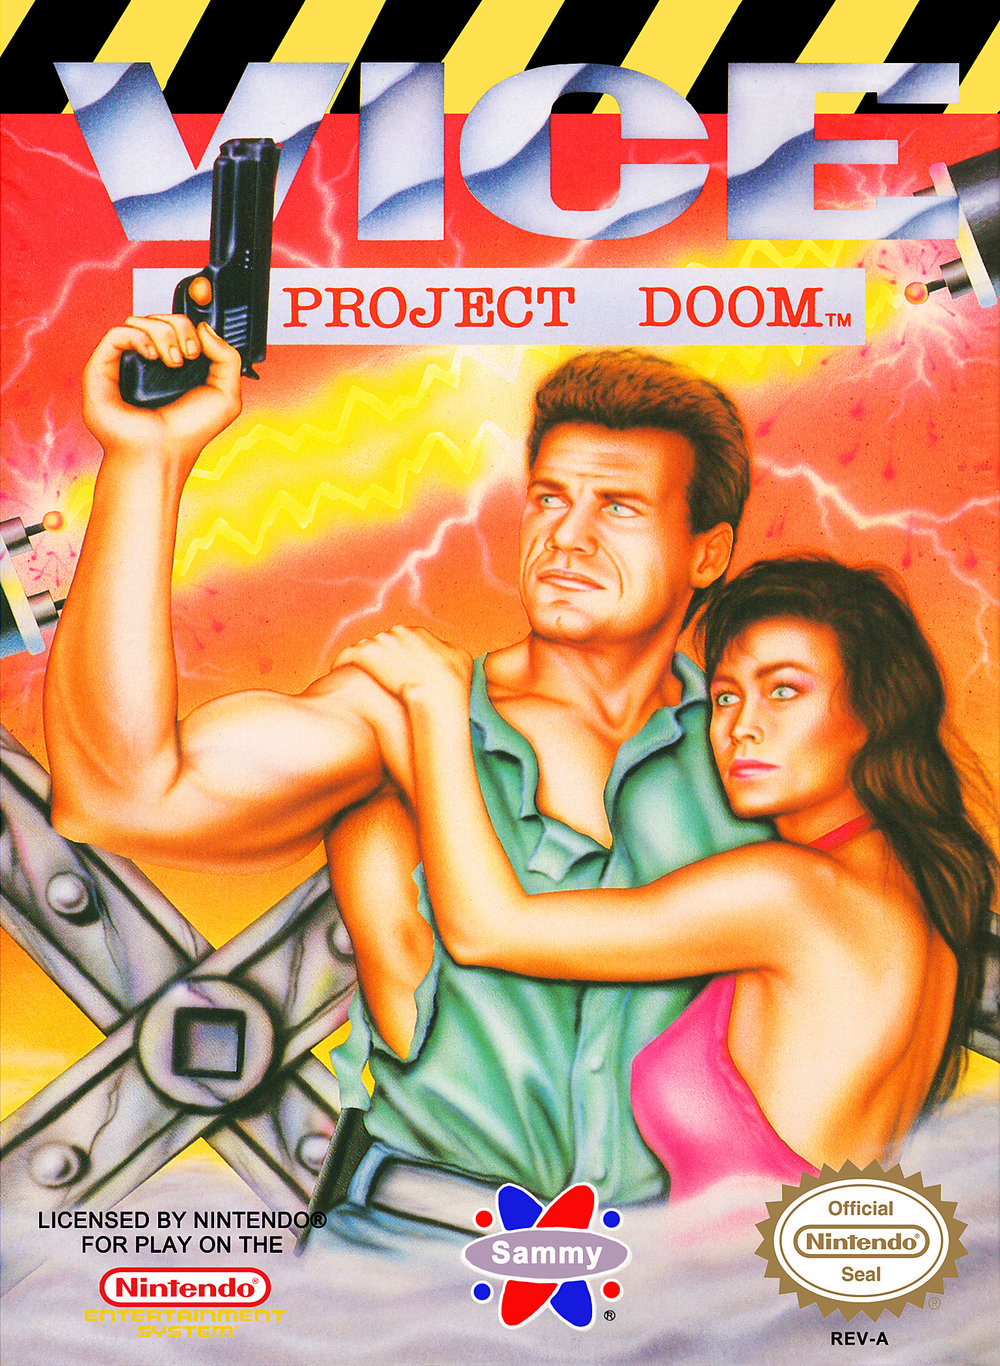 2362345 nes viceprojectdoom - Vice: Project Doom (American Sammy, 1991)